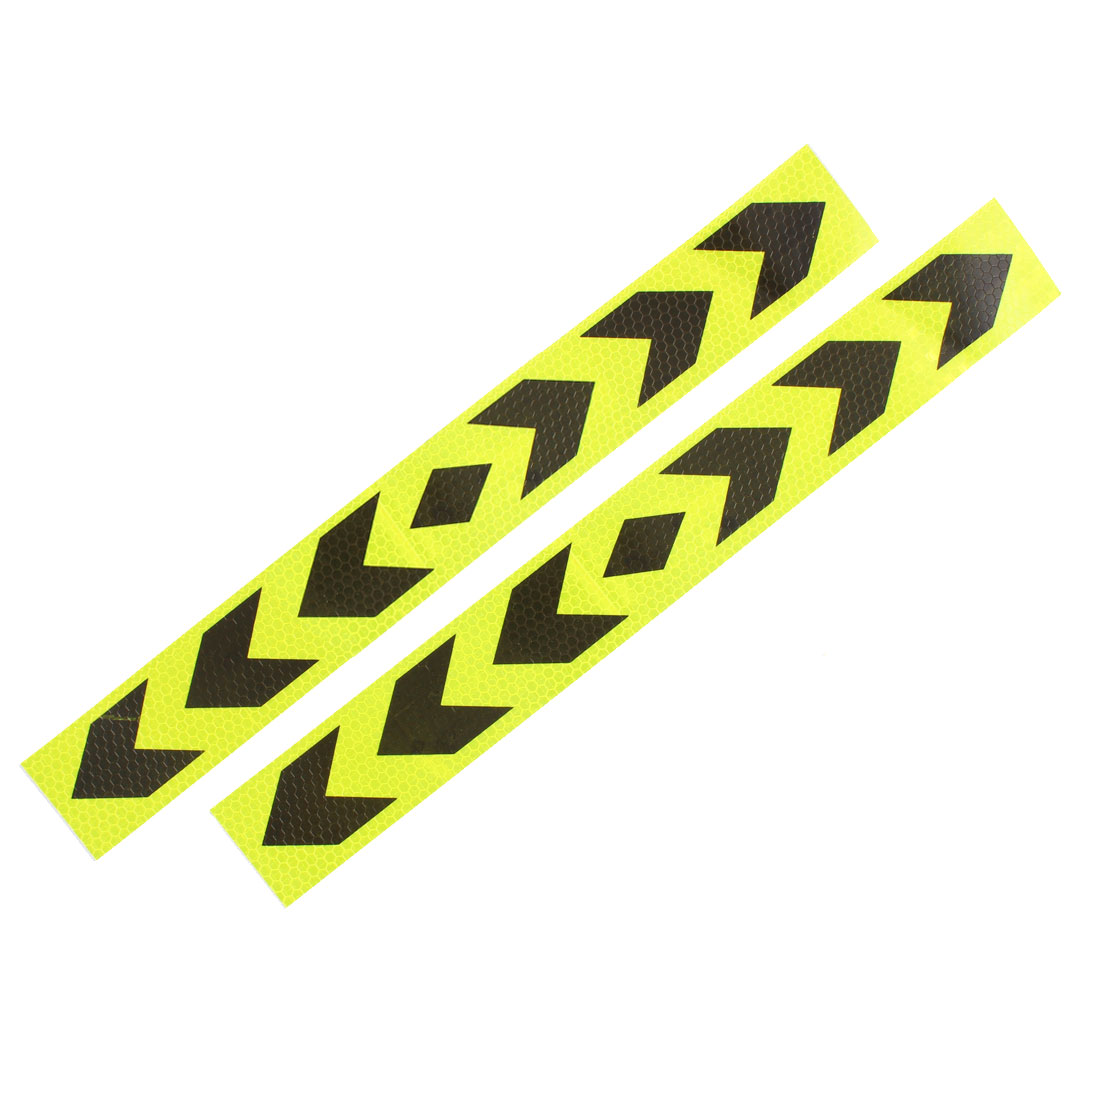 2 Pcs Arrows Printed Self Adhesive Type Car Reflective Warning Sign Sticker Tape Yellow Black